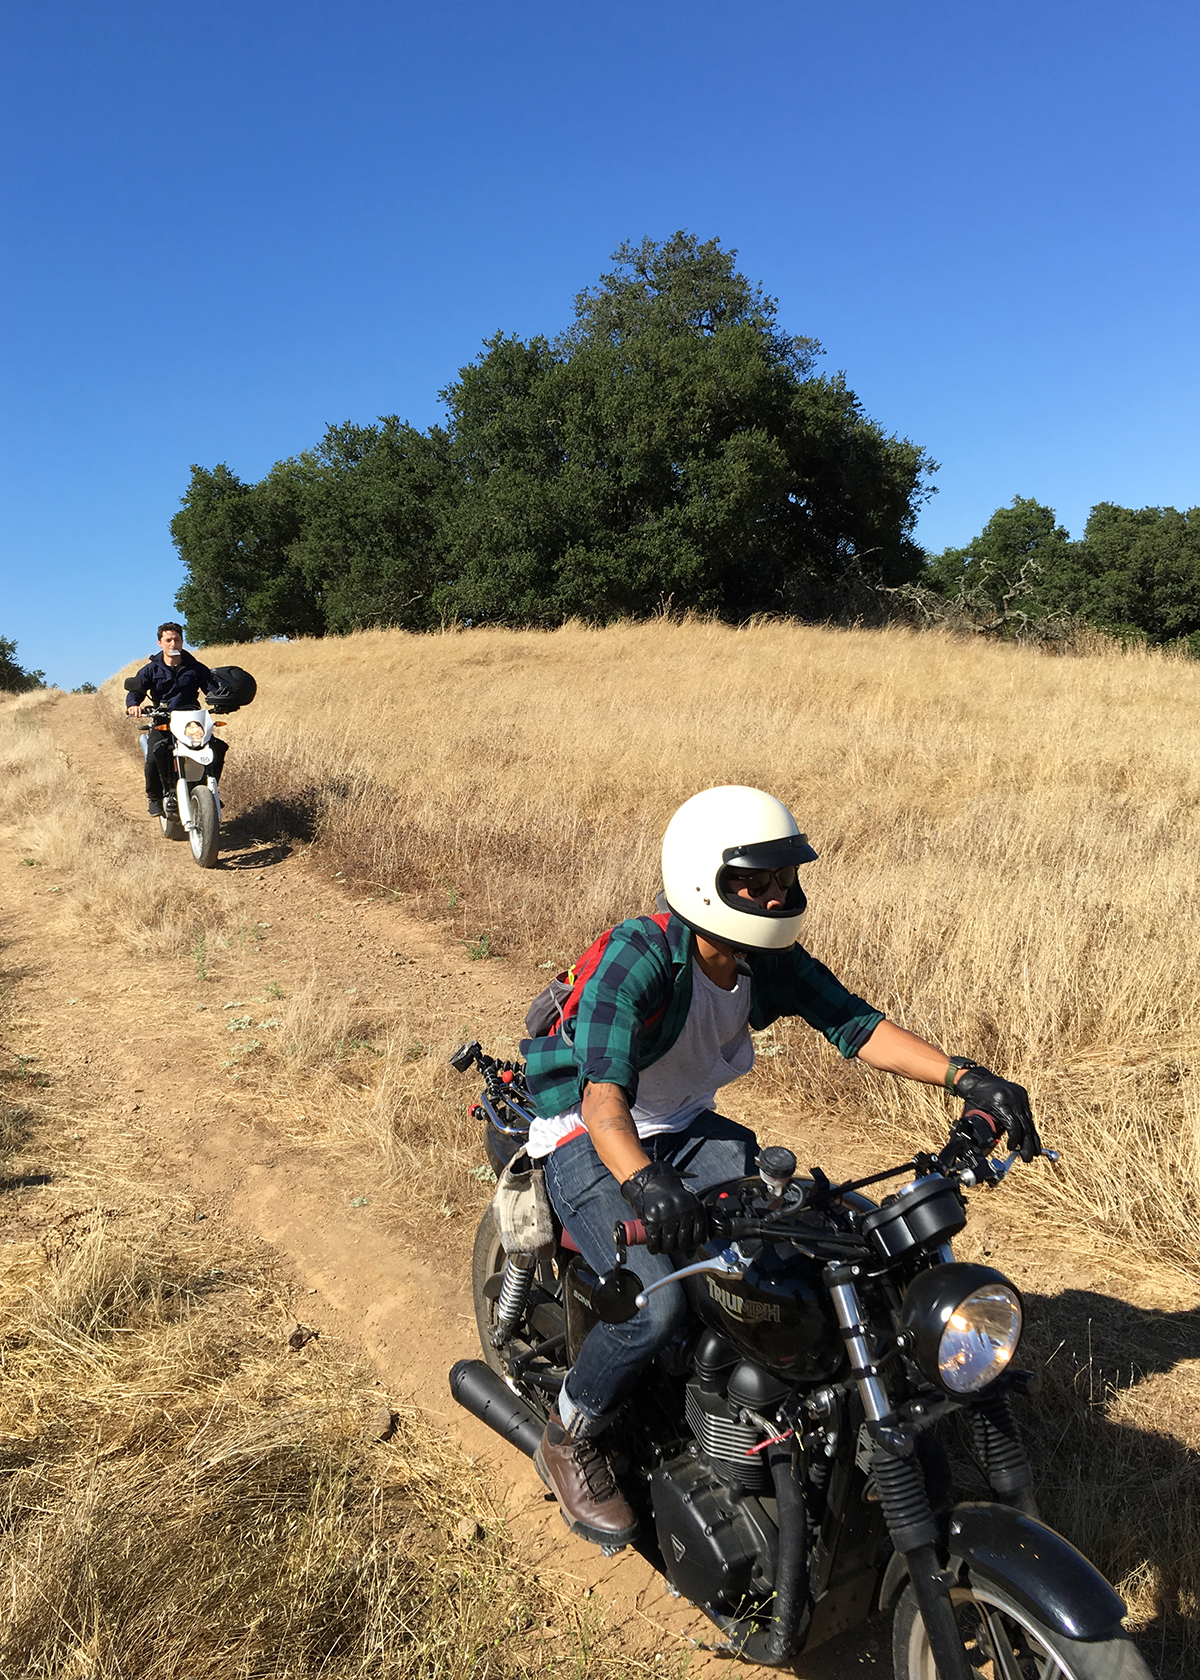 Martin Gschwandtl, and Hoang M Nguyen riding motorcycles in california back country.